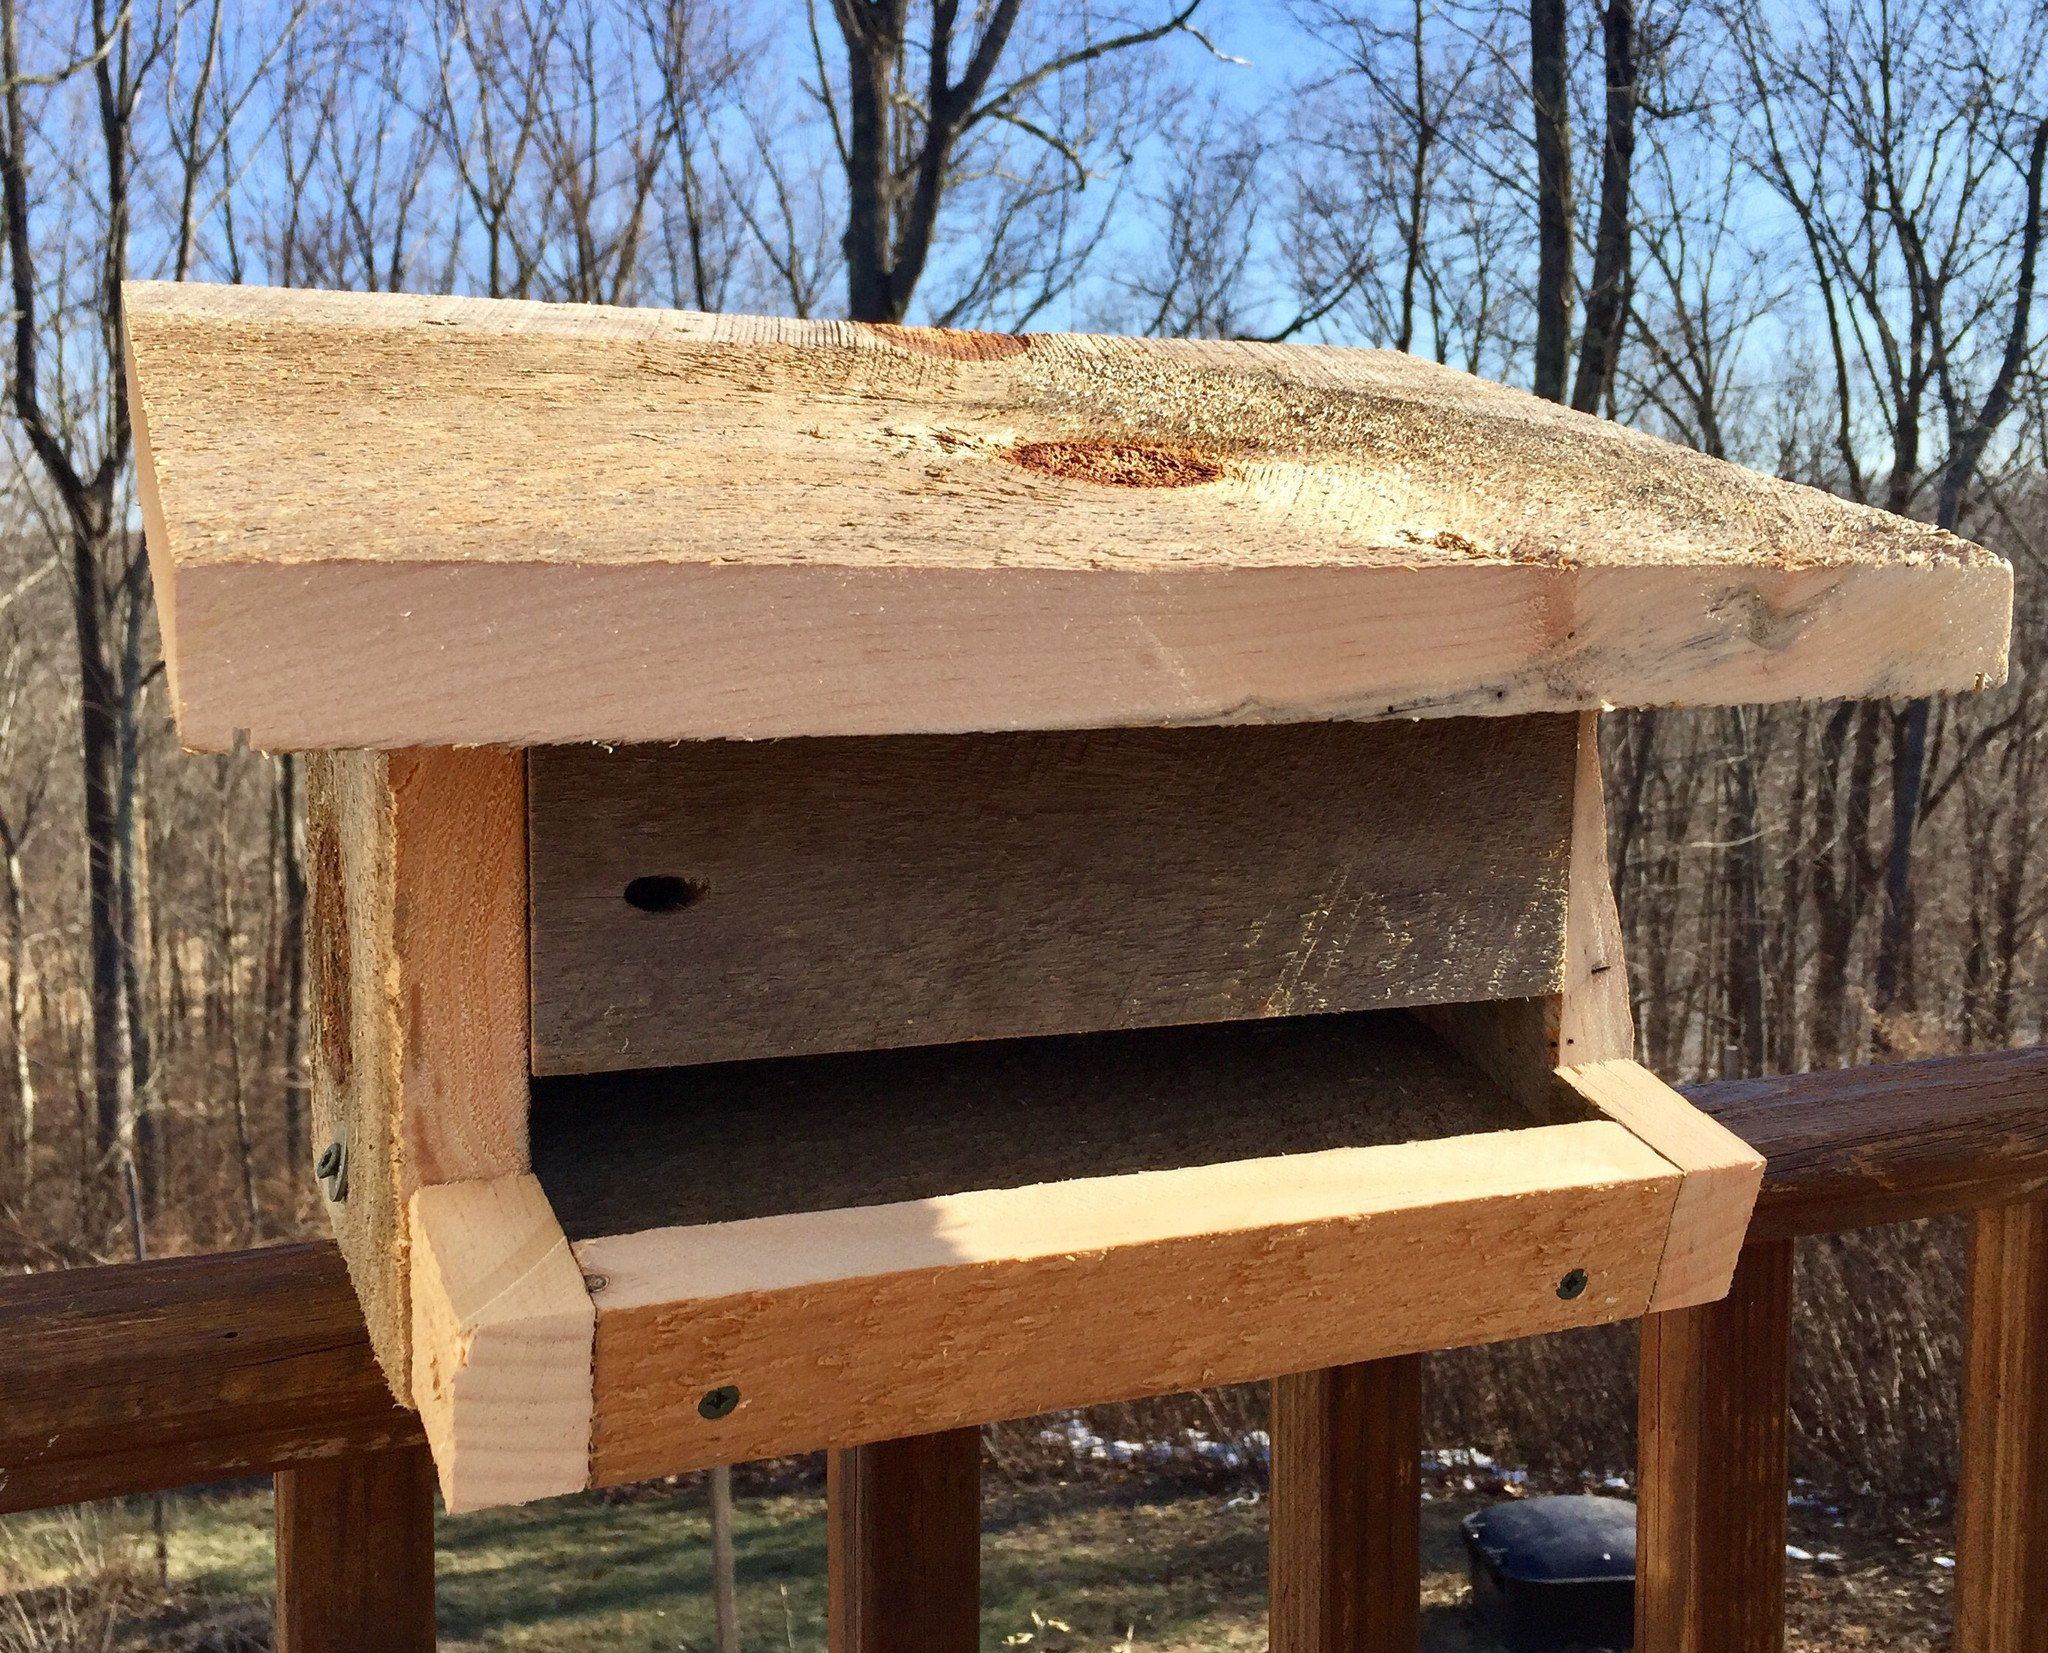 how to stop birds from building a nest on front porch